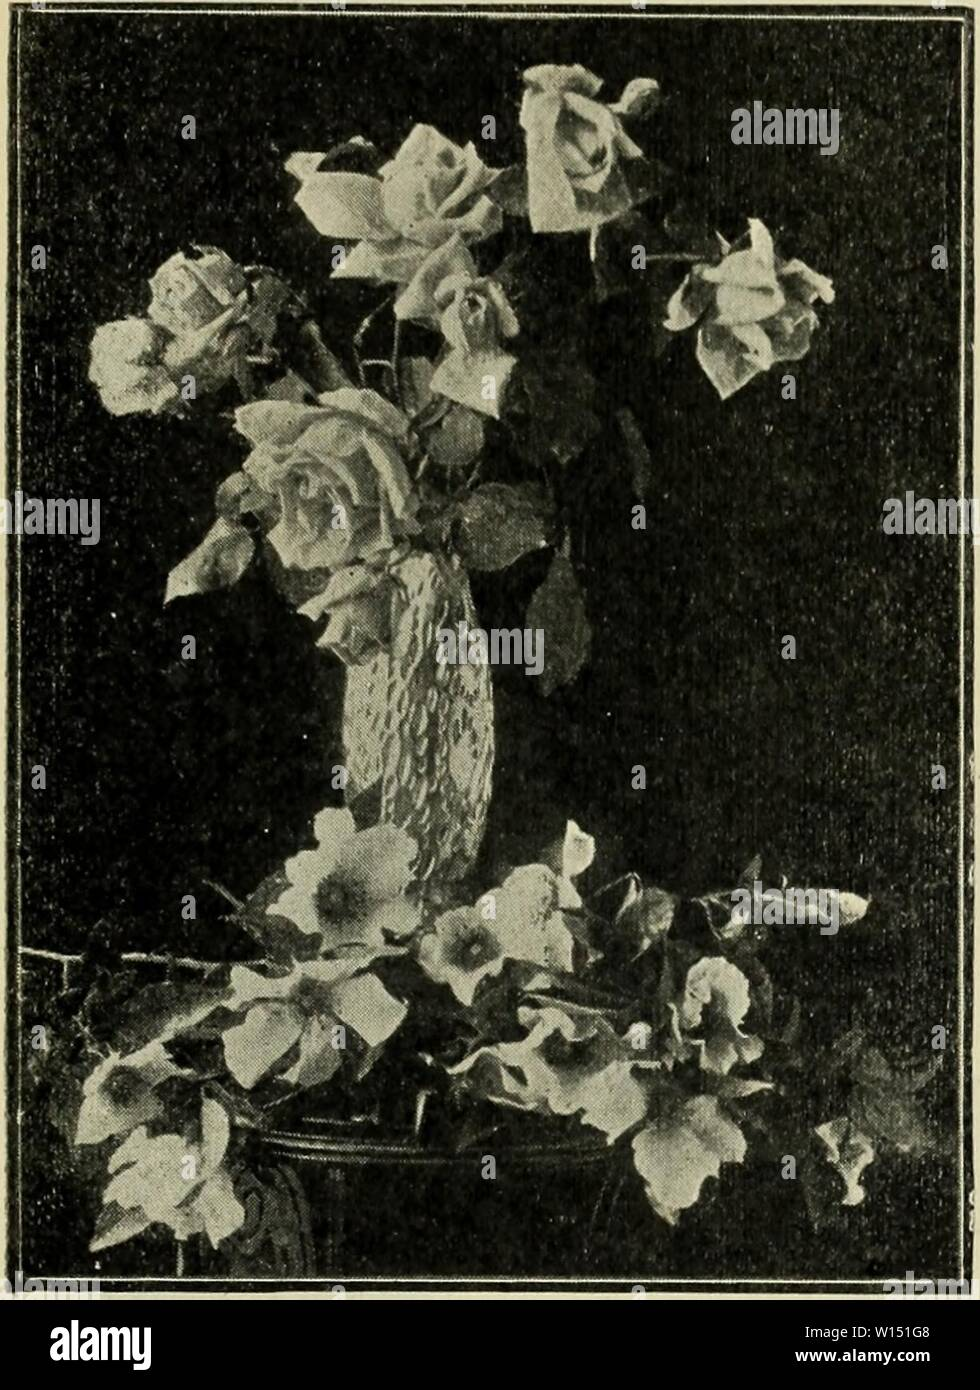 Archive image from page 104 of Descriptive catalogue  fruit and. Descriptive catalogue : fruit and forest trees, vines and shrubs, palms and choice roses . descriptivecatal1904fanc Year: 1904  PAN CHER CREEK NURSERIES. 101 tor; said to be a dwarf Crimson Rambler, but a perpetual bloomer; very vigorous foliage, of a beautiful, deep, bright green color. Wherever exhibited it has secured valuable prizes.    Belle Siebrceht —Hybrid Tea. Page 102 Single Cherokee at the Base. Mainan Cochet, (Tea). One of the finest roses of recent introduction from France; a vigorous grower, with beautiful foliage; - Stock Image